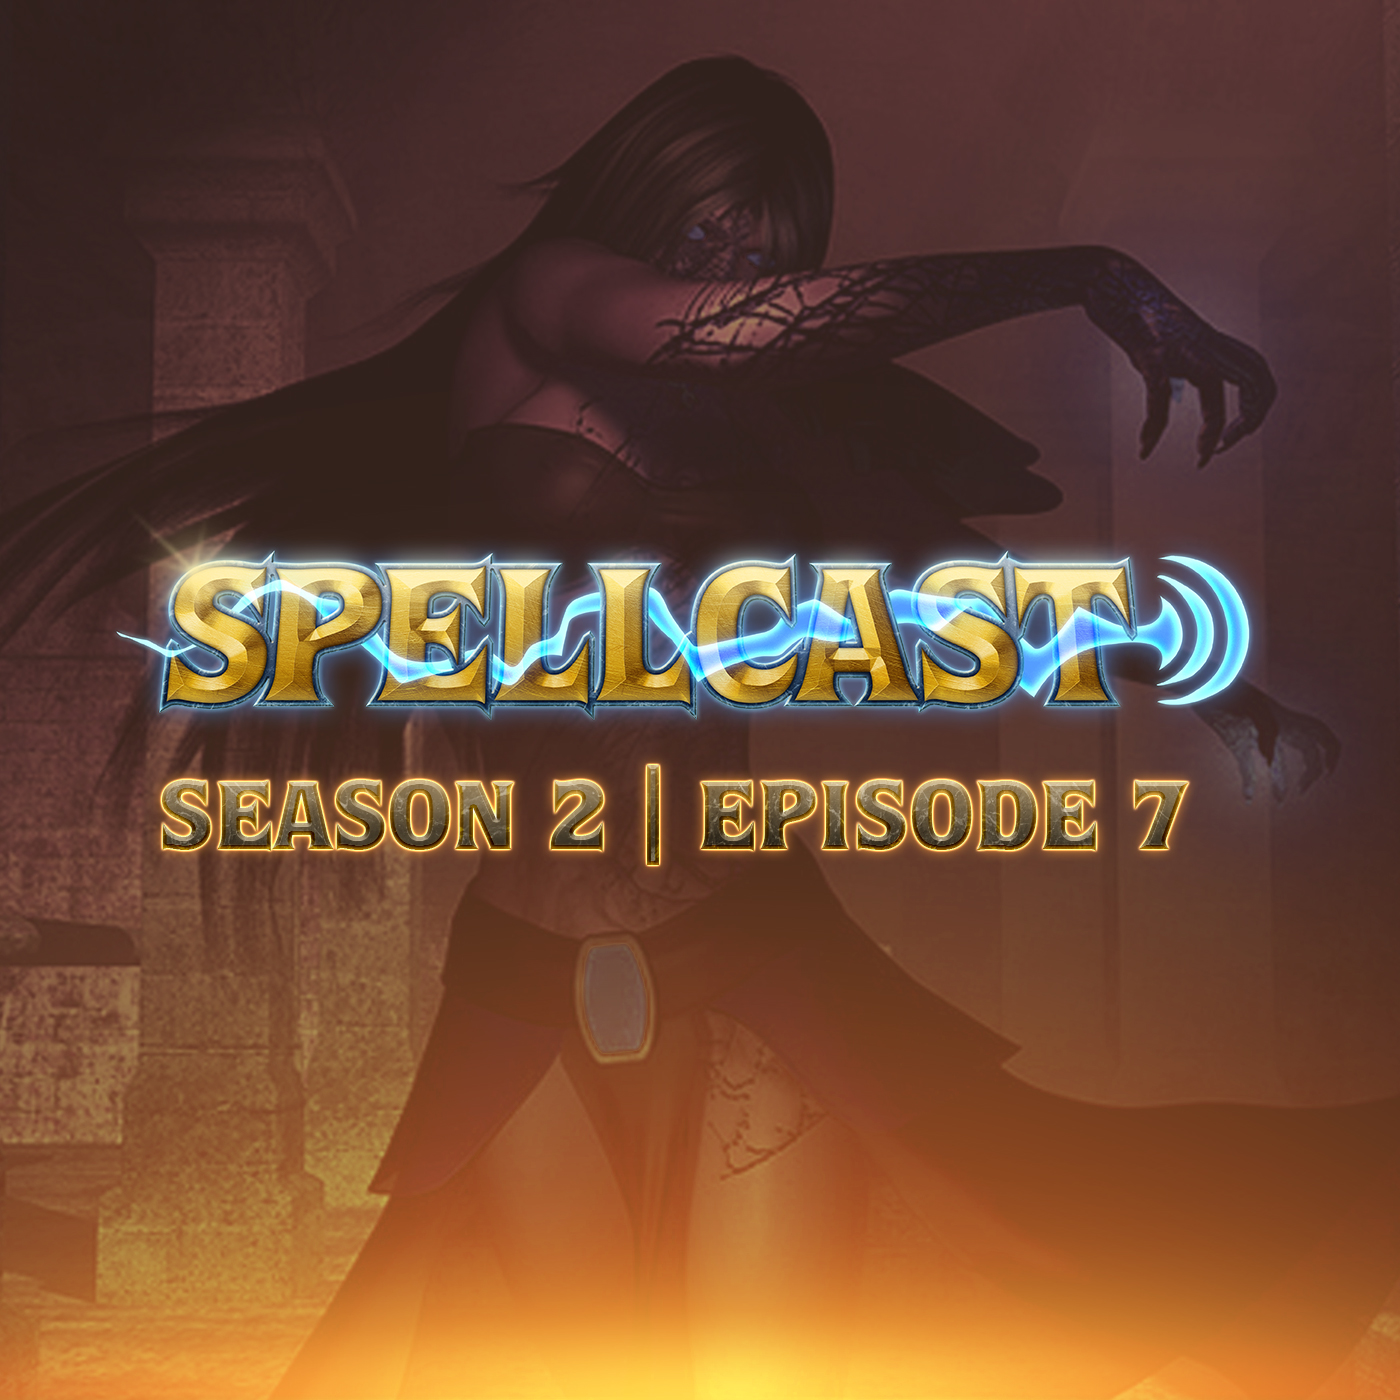 Spellcast Season 2 Episode 7